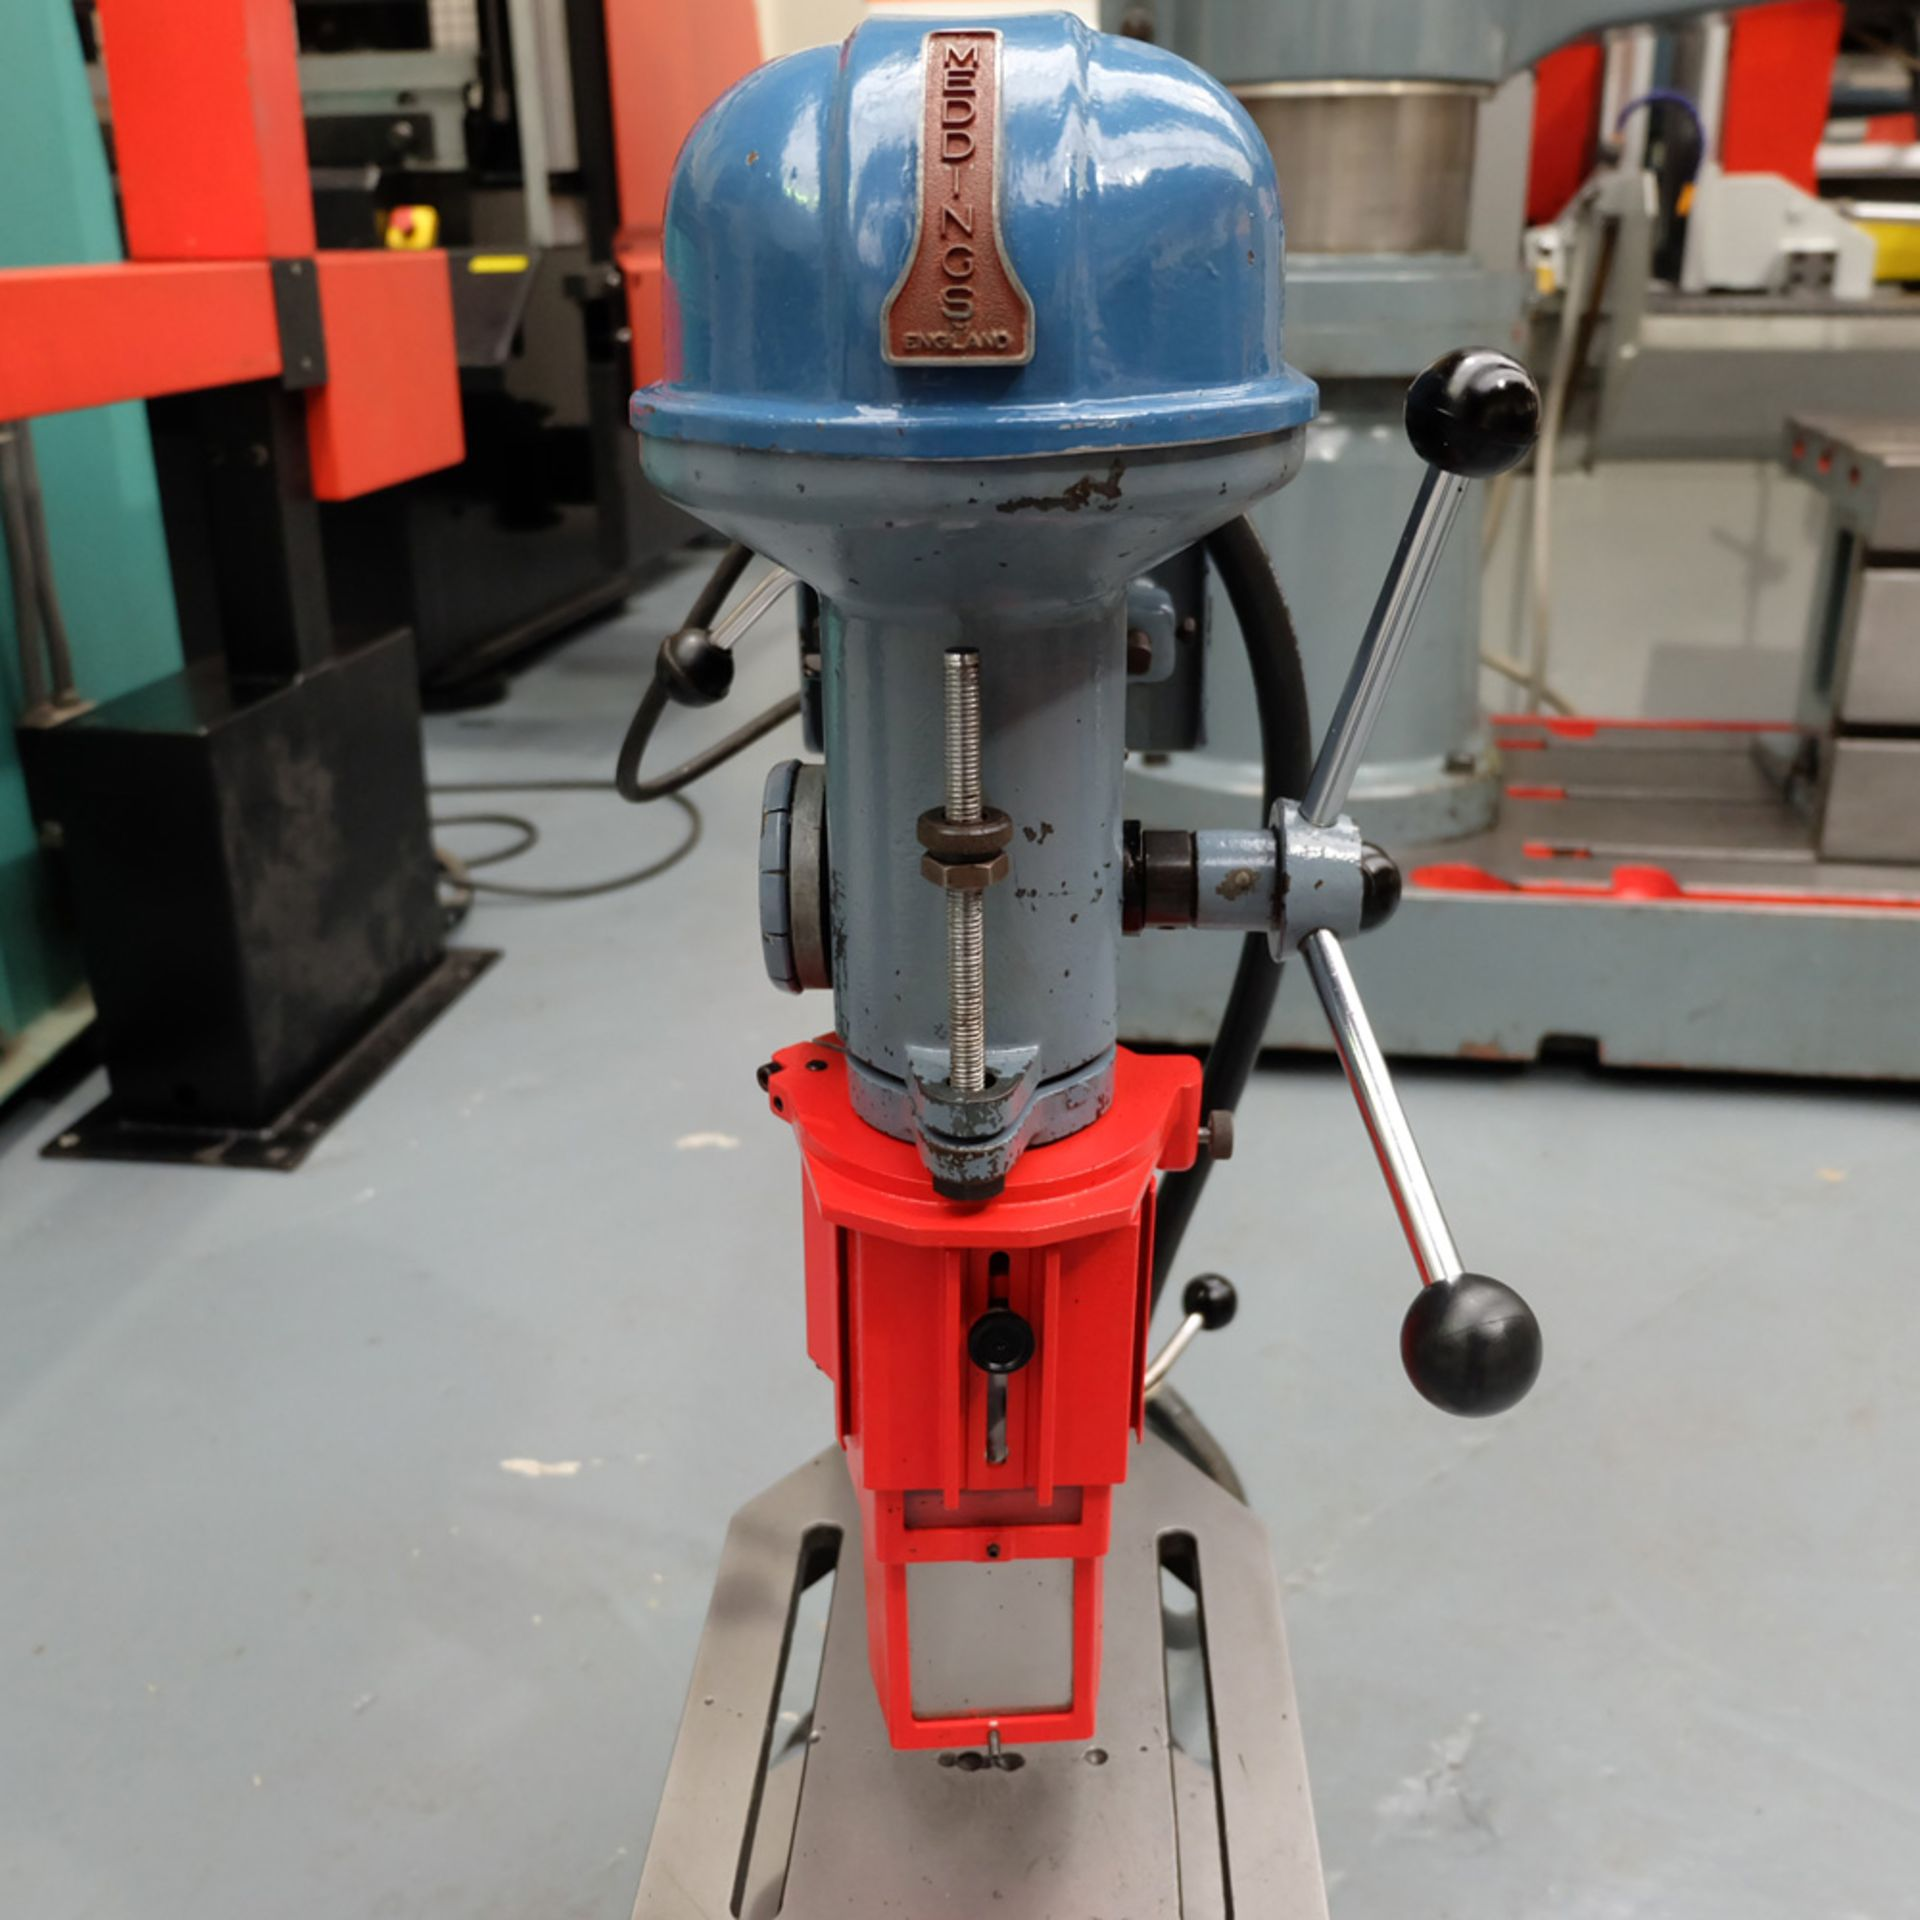 """Meddings Drilltru DTF Bench Drill. Capacity 1/2"""". Table Size 9"""" x 11"""". - Image 4 of 7"""